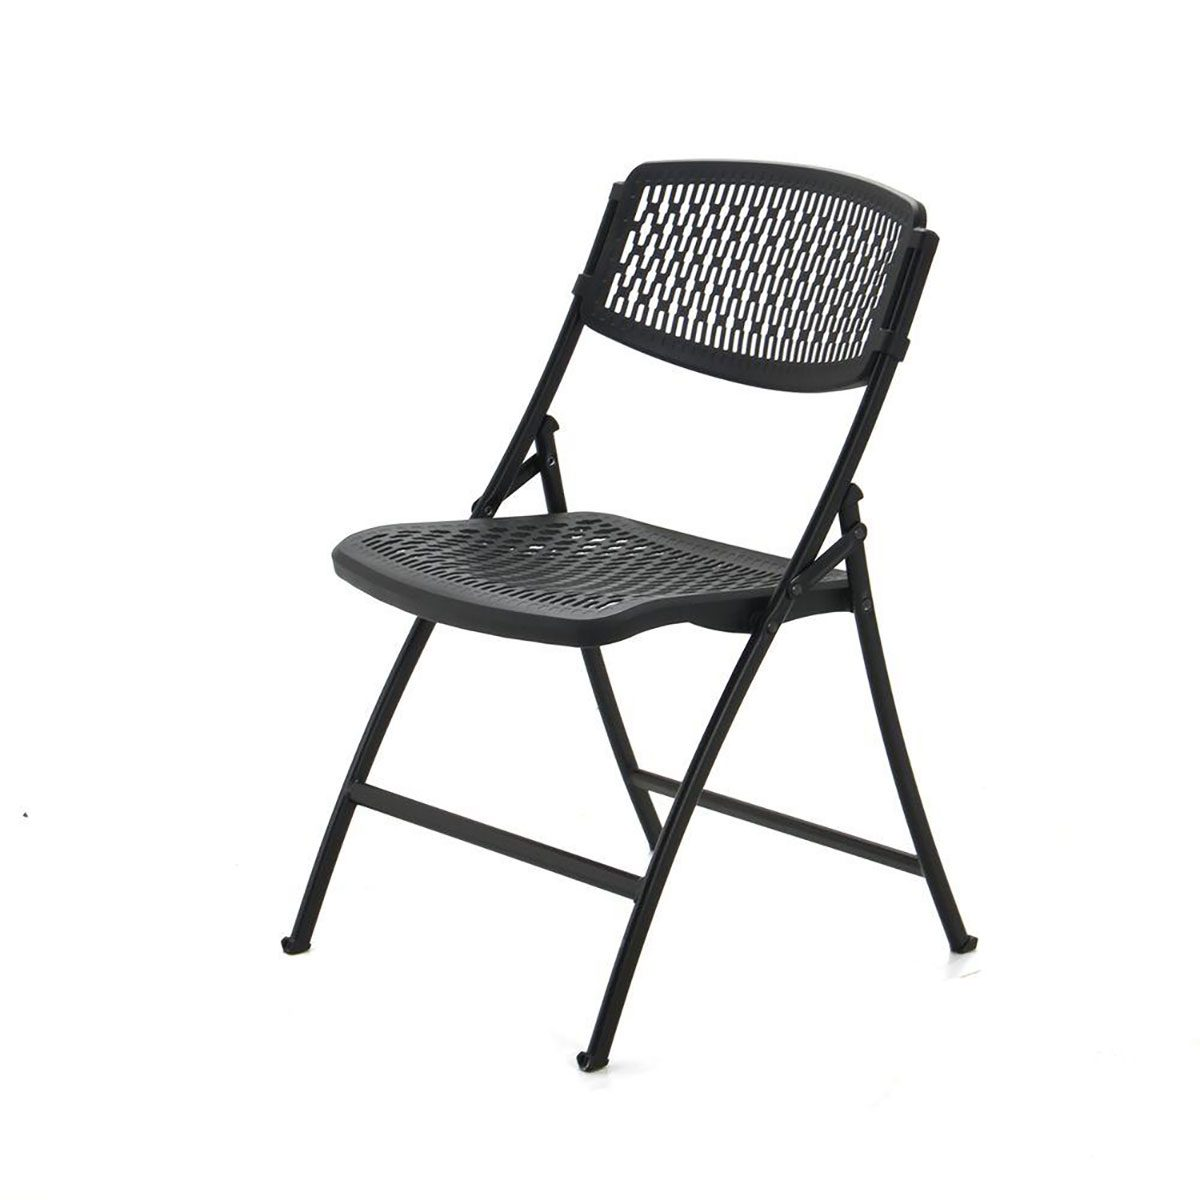 10 Best Outdoor Folding Chairs For 2020 The Family Handyman